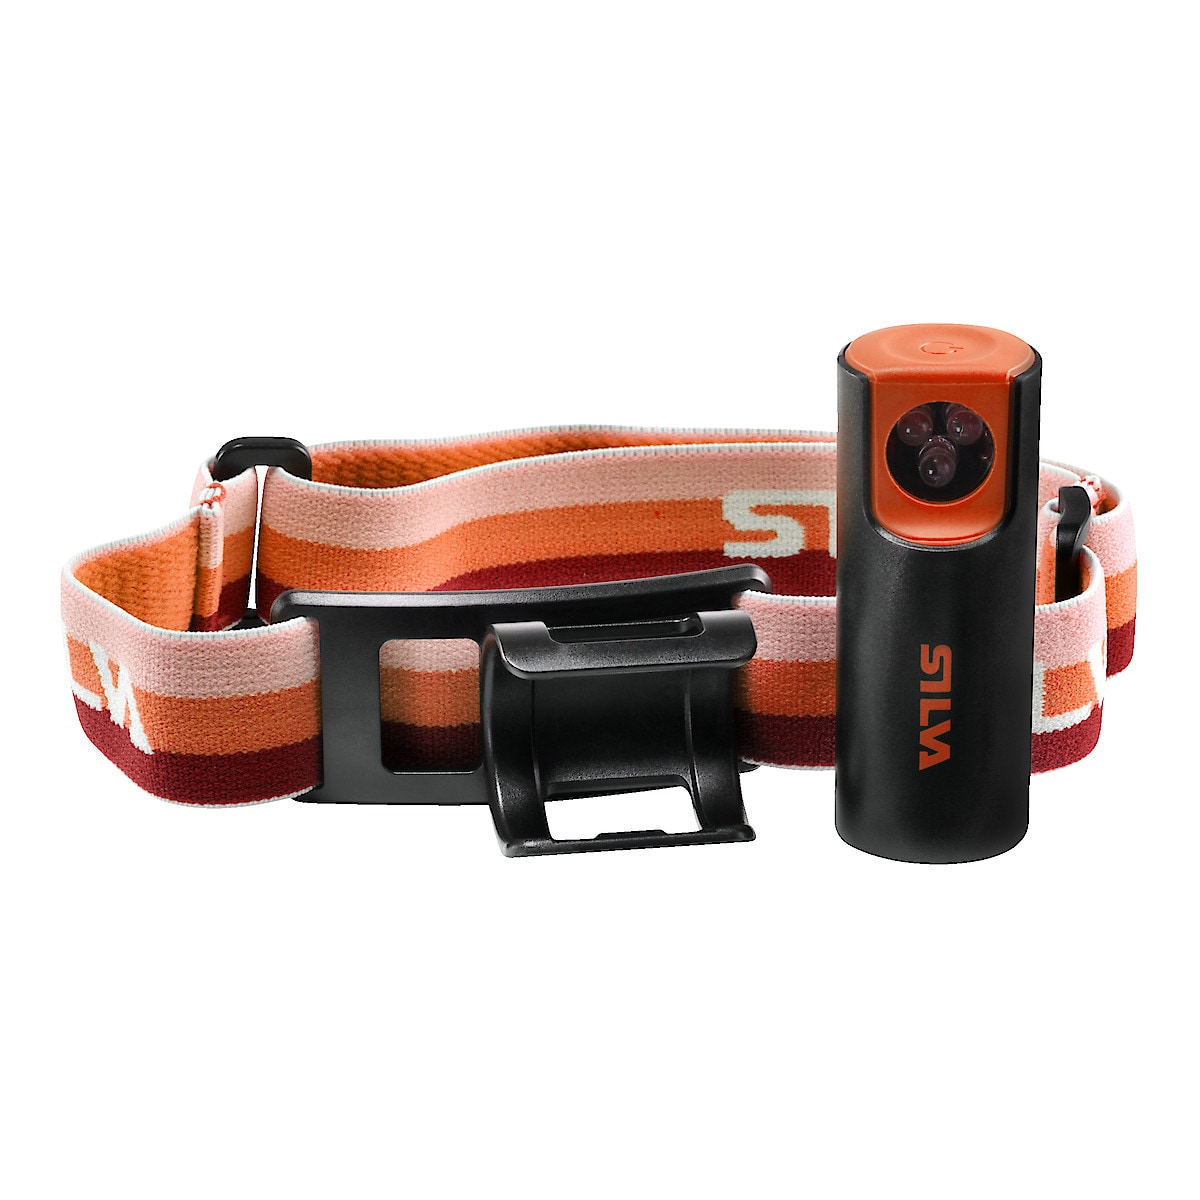 Silva Tipi Head Torch